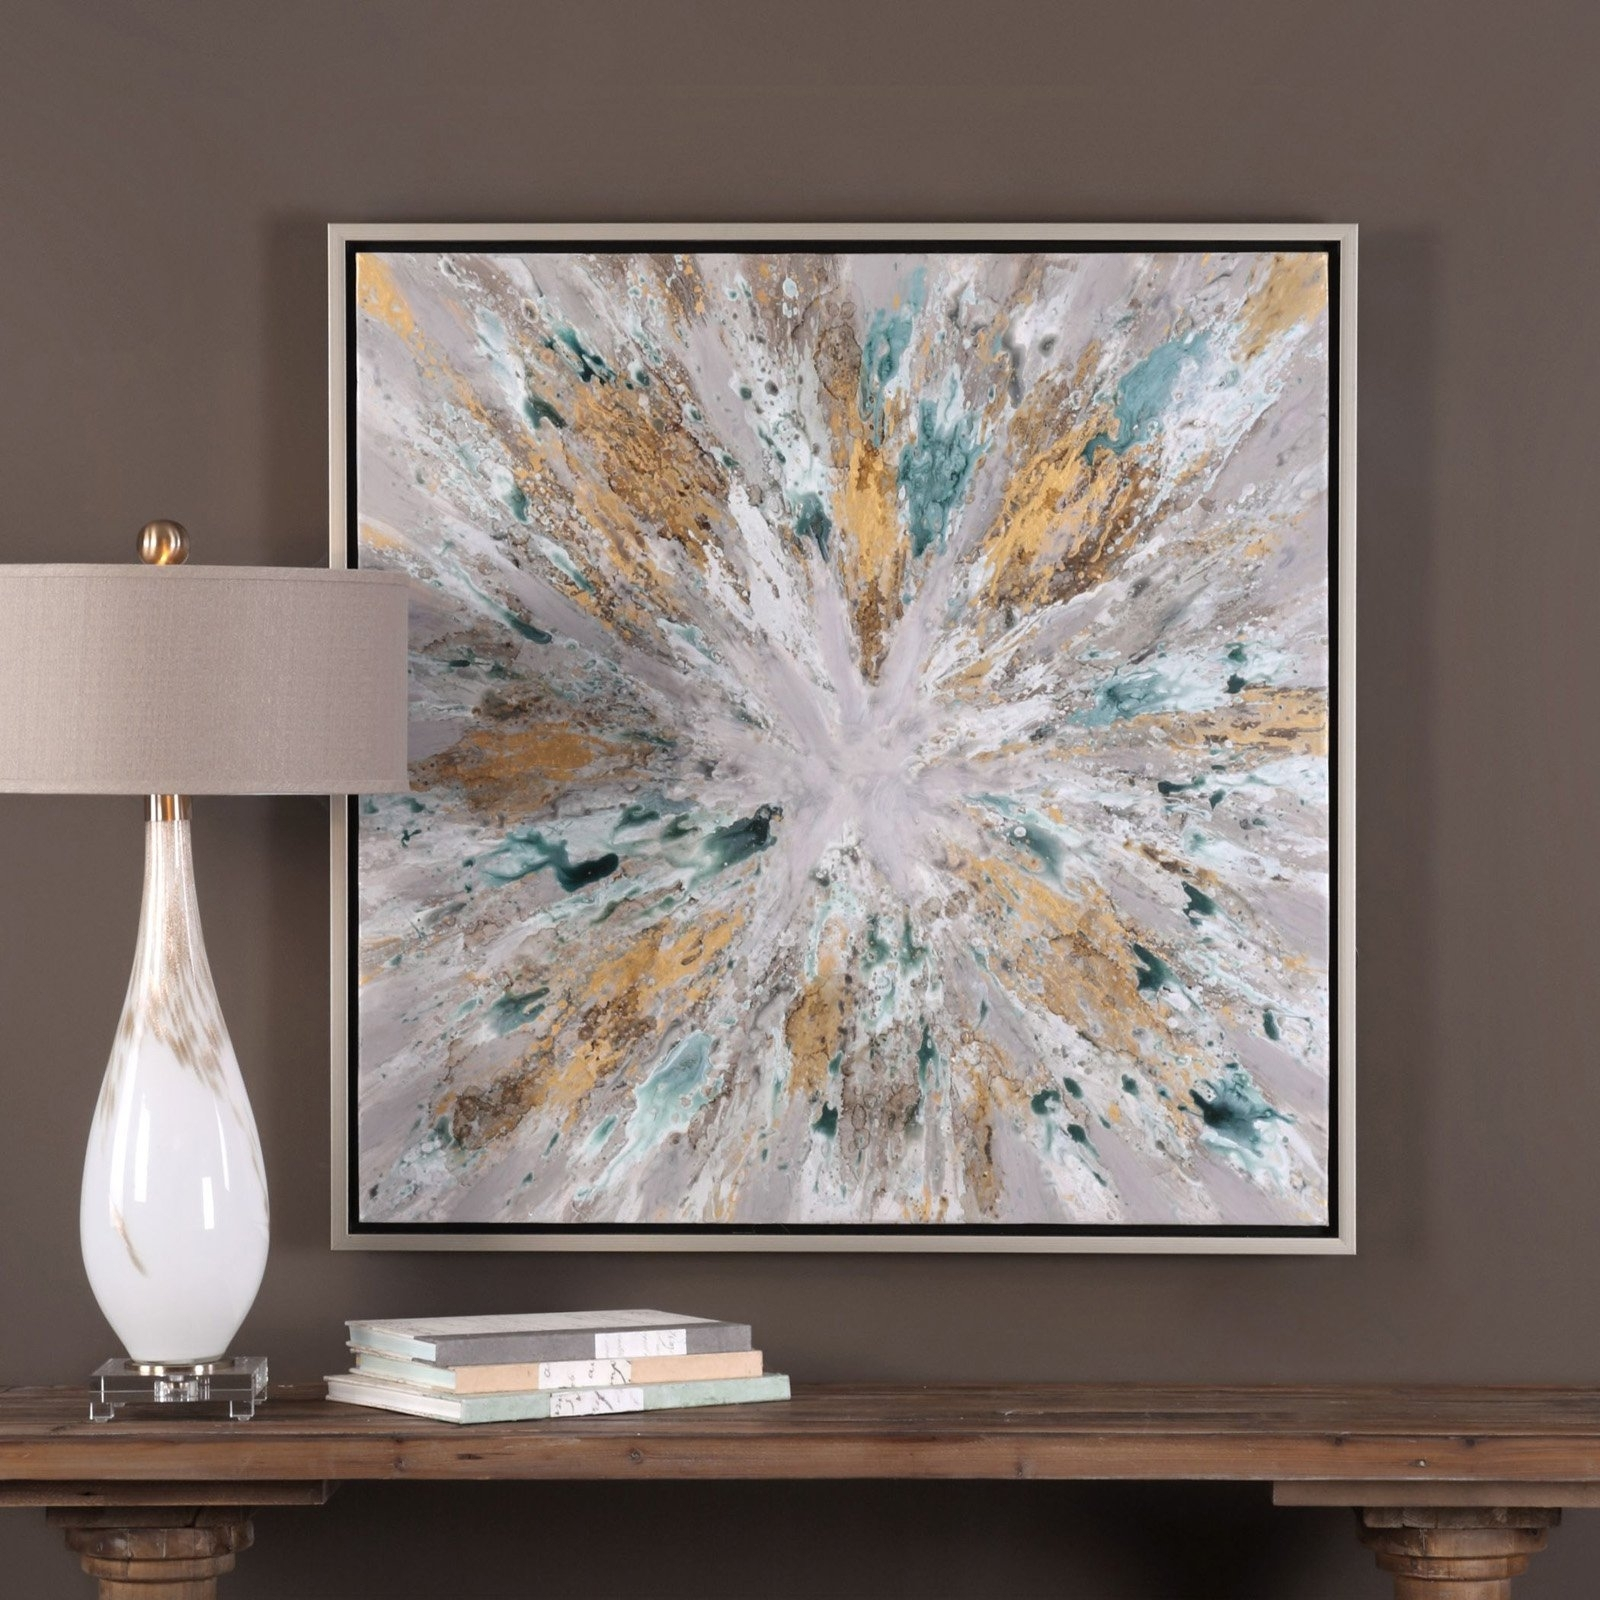 Uttermost Exploding Star Wall Art | Hayneedle Within Most Recently Released Uttermost Wall Art (View 13 of 20)